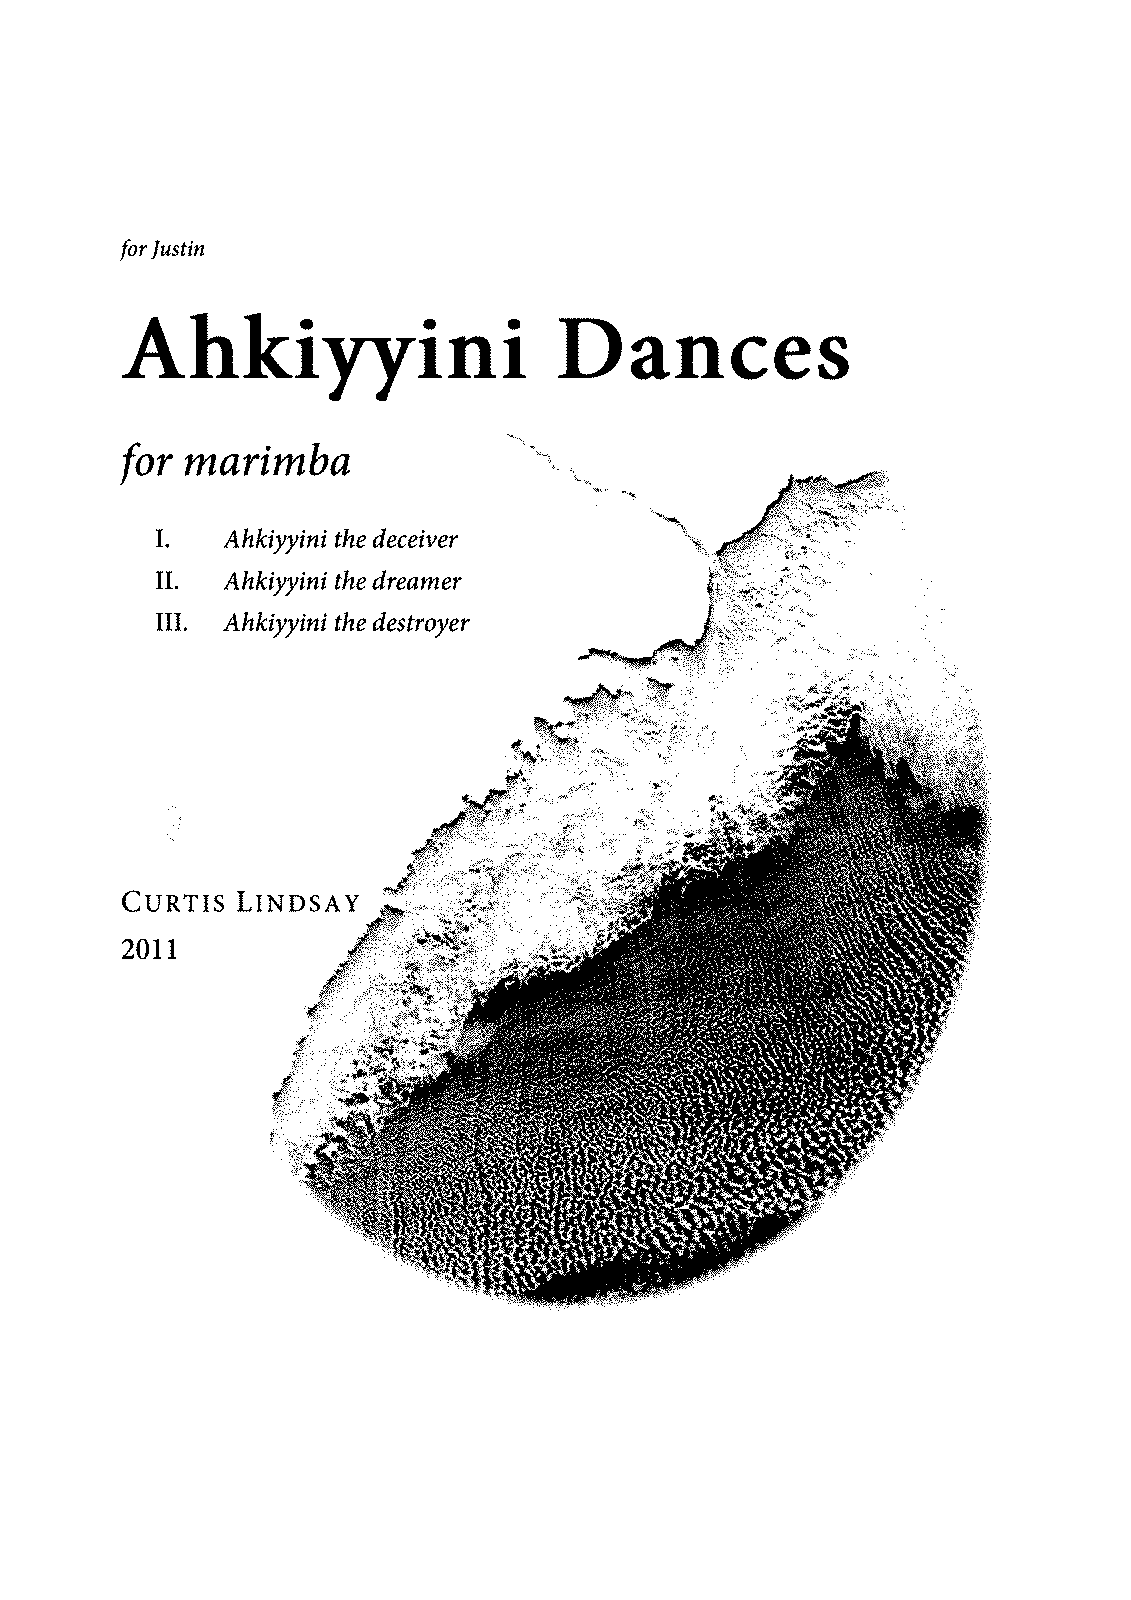 PMLP396447-Ahkiyyini Dances 042012.pdf